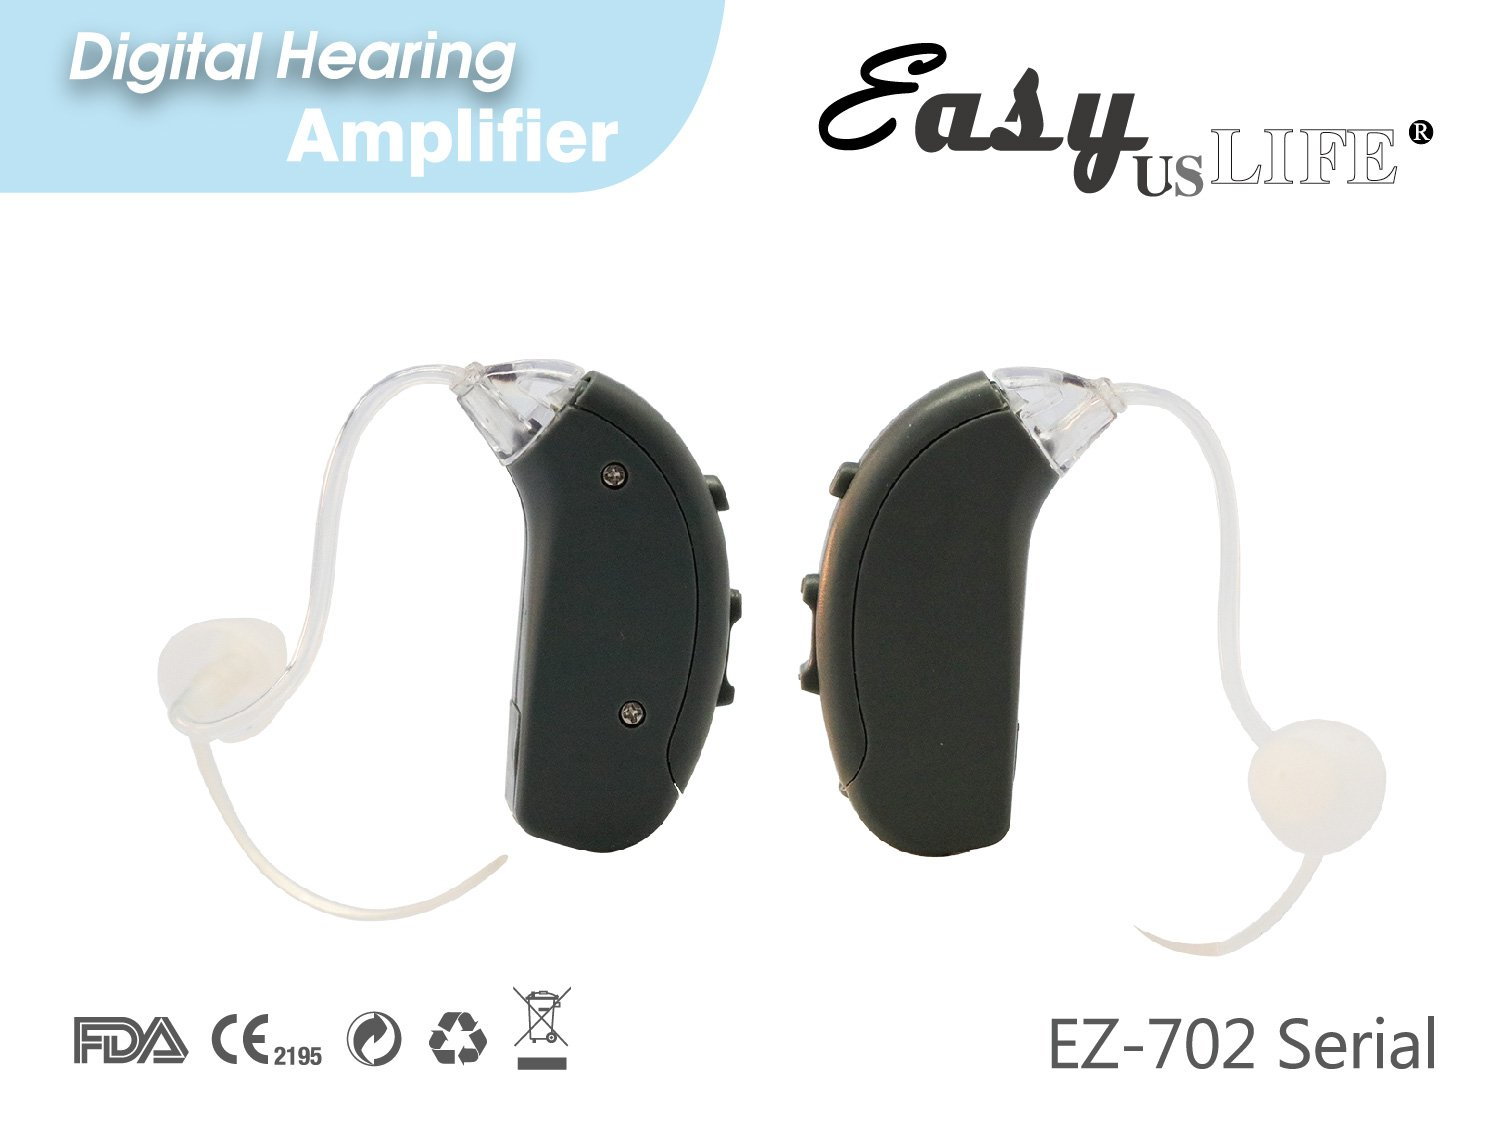 Easyuslife Ear Amplifiers Set Of 2 Hearing Amplifiers Dark Gray Devices With Digital Noise Cancellation , Discreet and Lightweight Ear Amplifying Machine With Volume and Frequency Control System by EASYUSLIFE